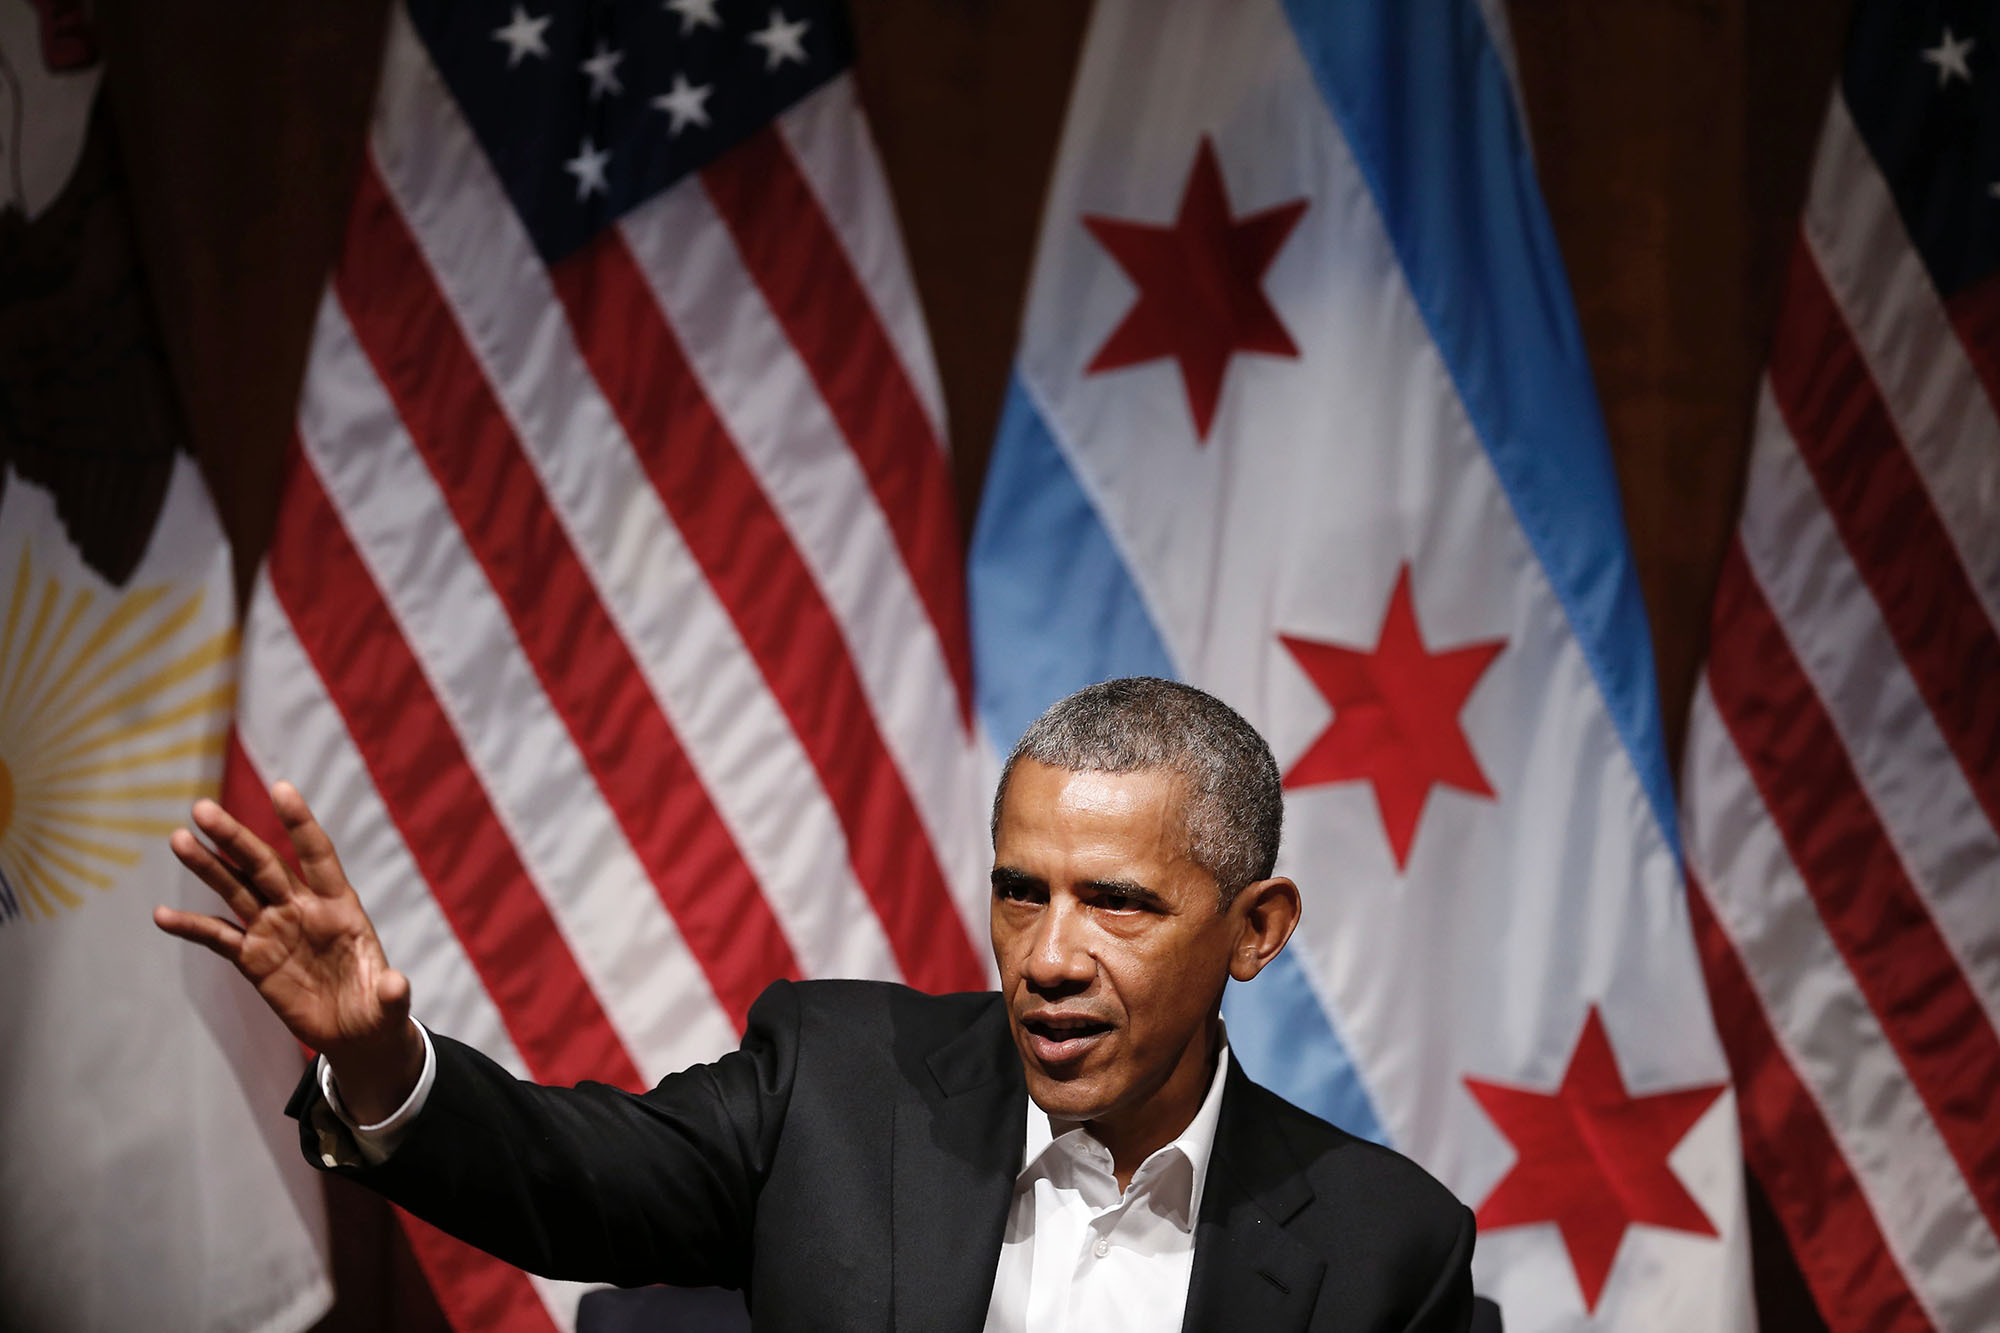 Former US President Barack Obama speaks at a forum with young leaders to discuss community organizing at the University of Chicago in Chicago,Illinois on April 24, 2017. / AFP PHOTO / JIM YOUNG        (Photo credit should read JIM YOUNG/AFP/Getty Images)